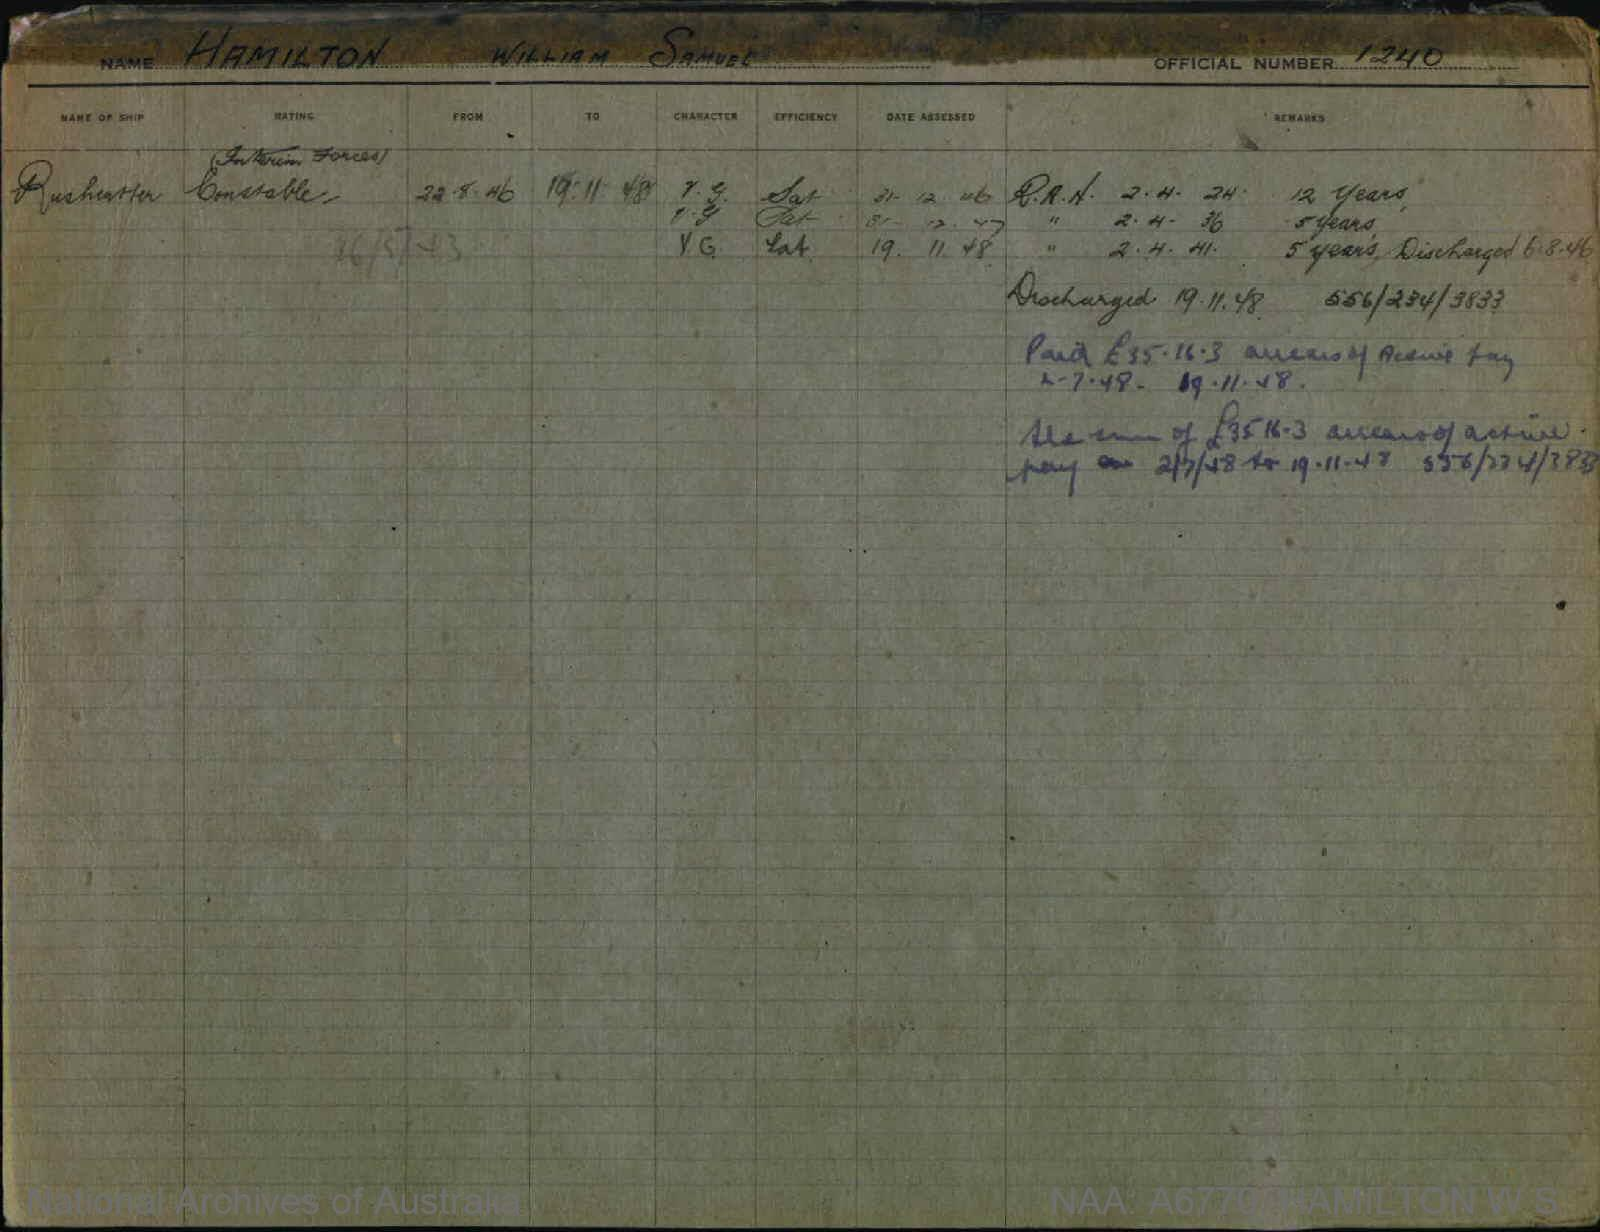 HAMILTON WILLIAM SAMUEL : Service Number - 1240 : Date of birth - 12 Apr 1904 : Place of birth - SOUTH MELBOURNE VIC : Place of enlistment - SYDNEY : Next of Kin - HAMILTON LILIAN